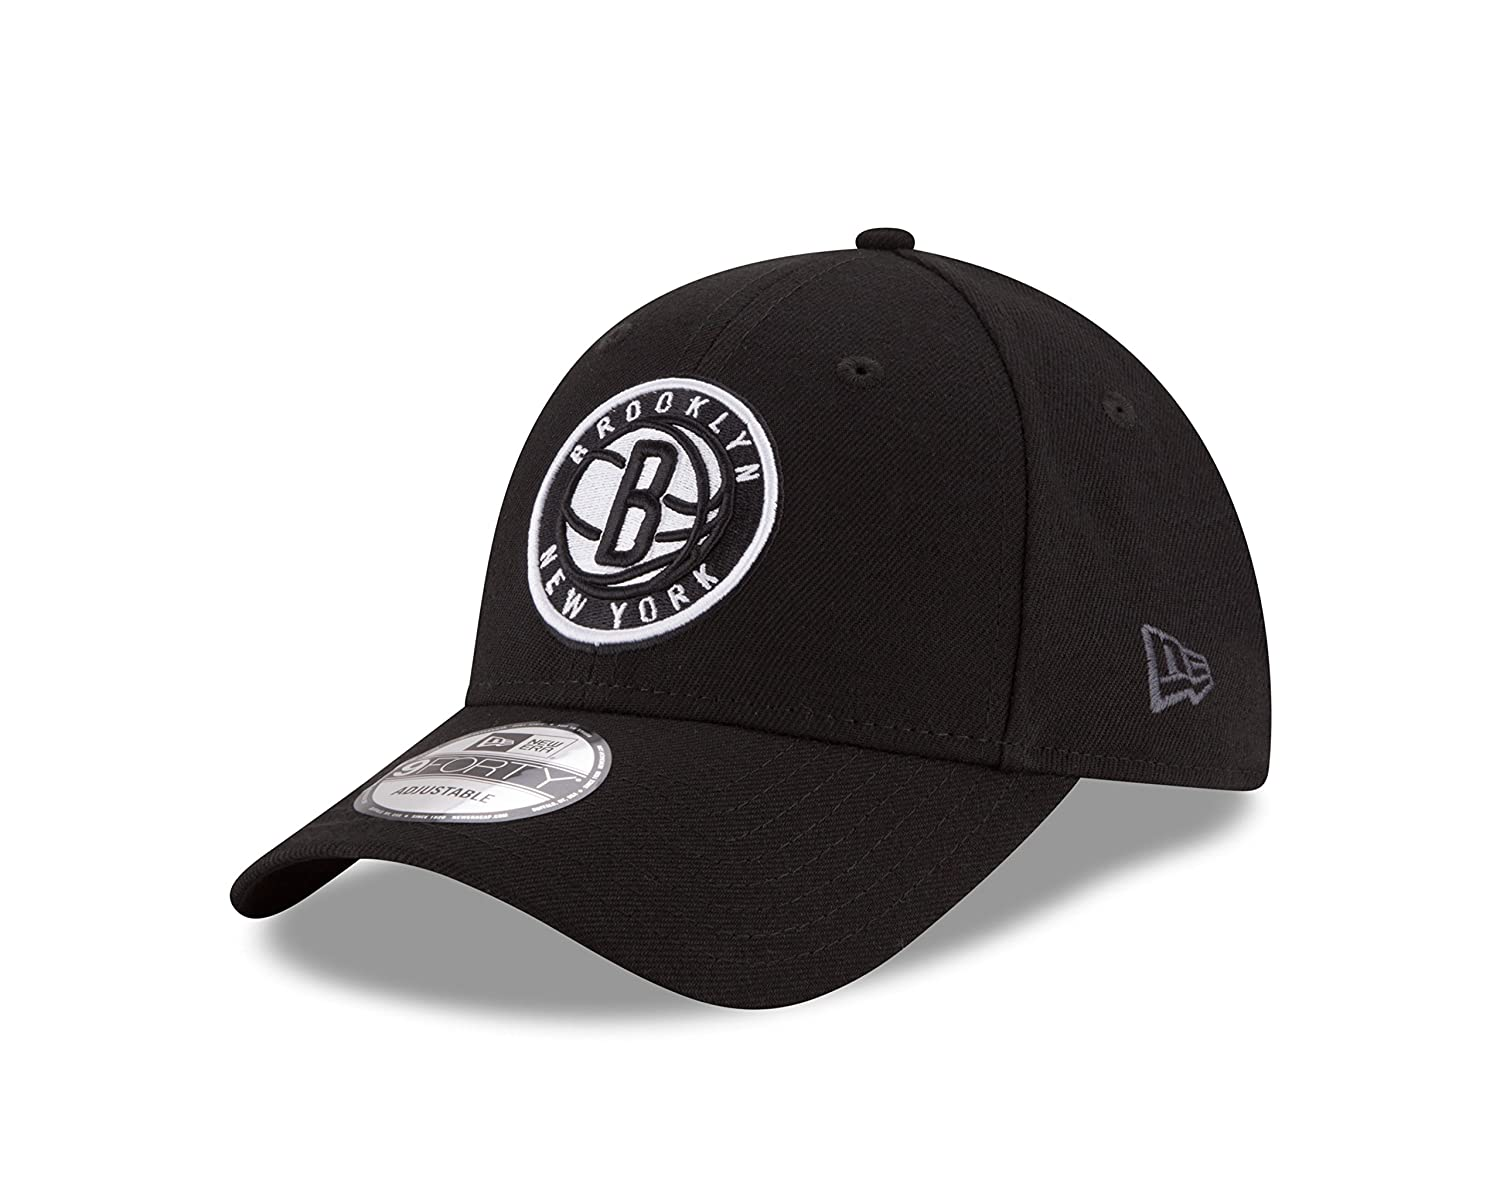 size 40 f67e3 11cd7 New Era Kids 9FORTY Brooklyn Nets Baseball Cap - NBA The League - Black  YOUTH ADJ  Amazon.co.uk  Clothing